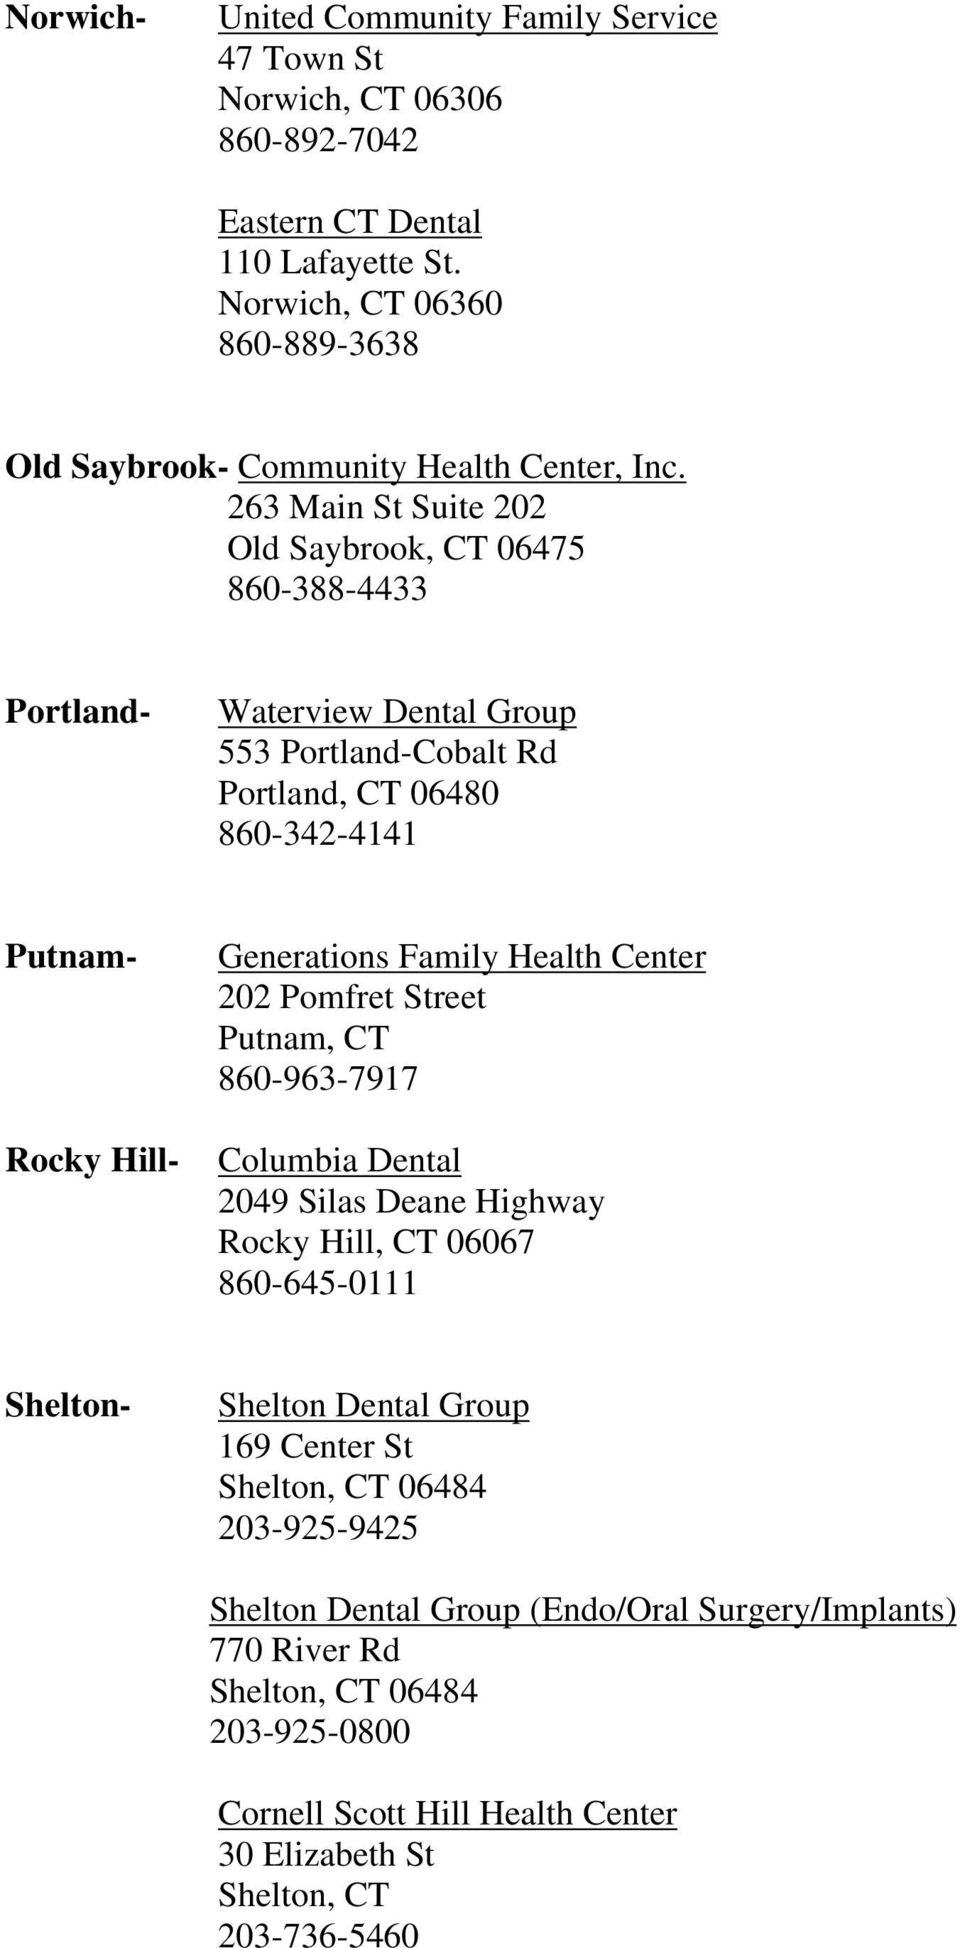 263 Main St Suite 202 Old Saybrook, CT 06475 860-388-4433 Portland- Waterview Dental Group 553 Portland-Cobalt Rd Portland, CT 06480 860-342-4141 Putnam- Rocky Hill- Generations Family